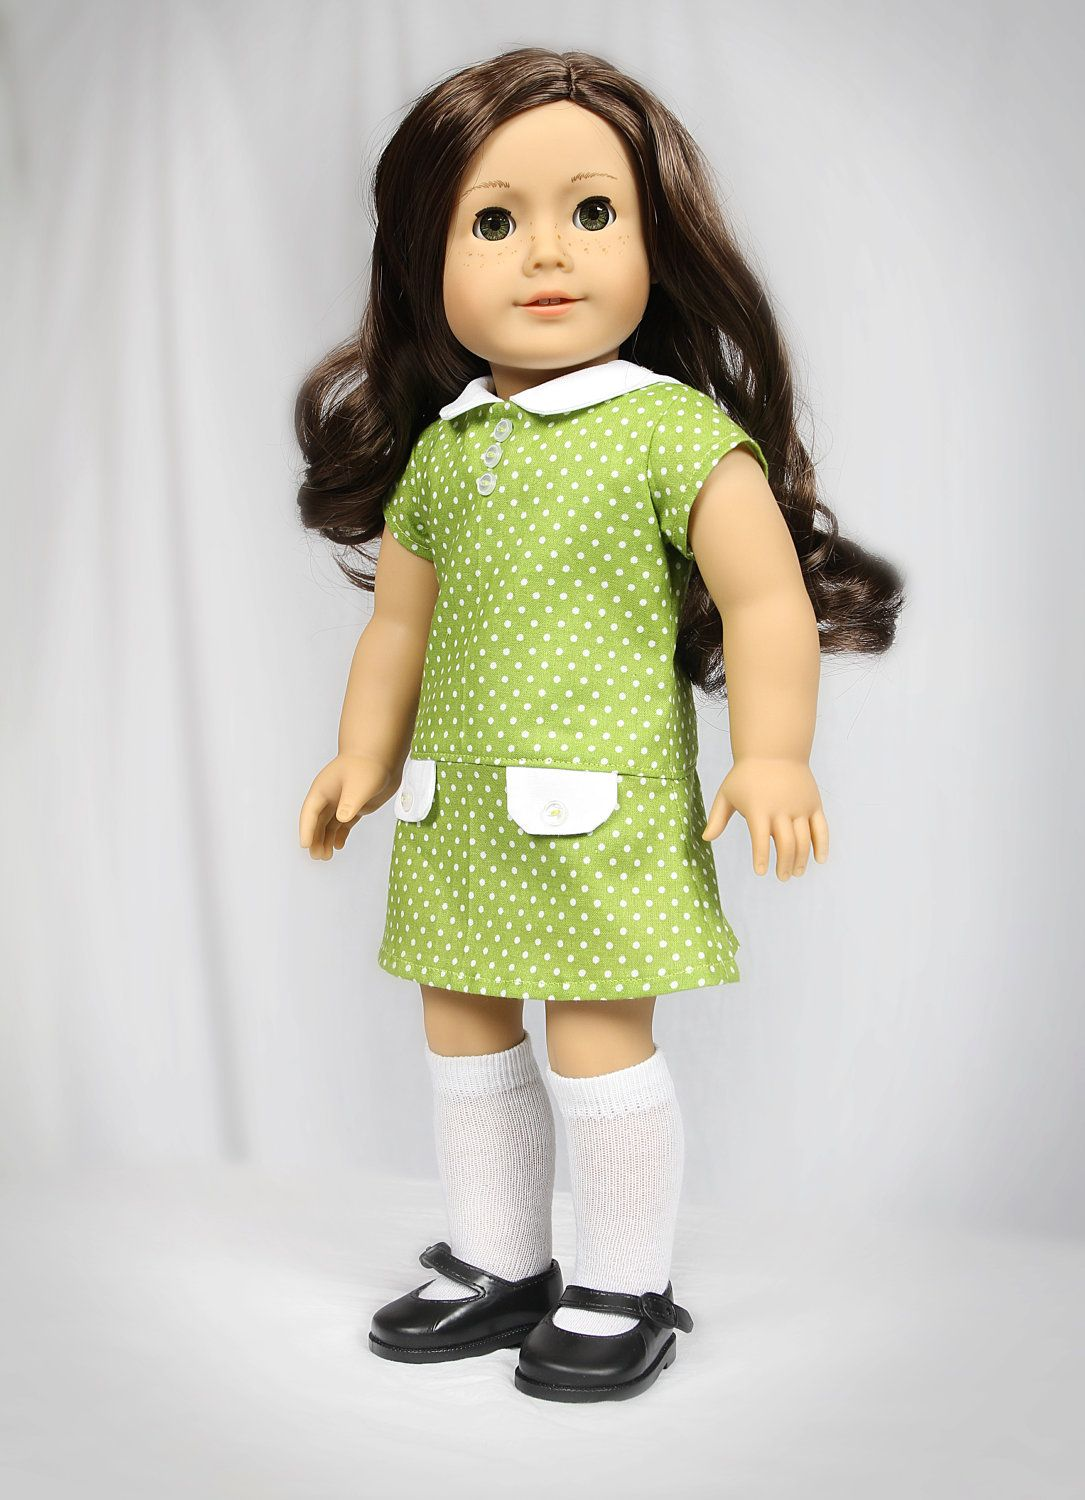 Pdf sewing pattern for 18 american girl doll clothes teachers pdf sewing pattern for 18 american girl doll clothes teachers pet school dress epattern jeuxipadfo Images